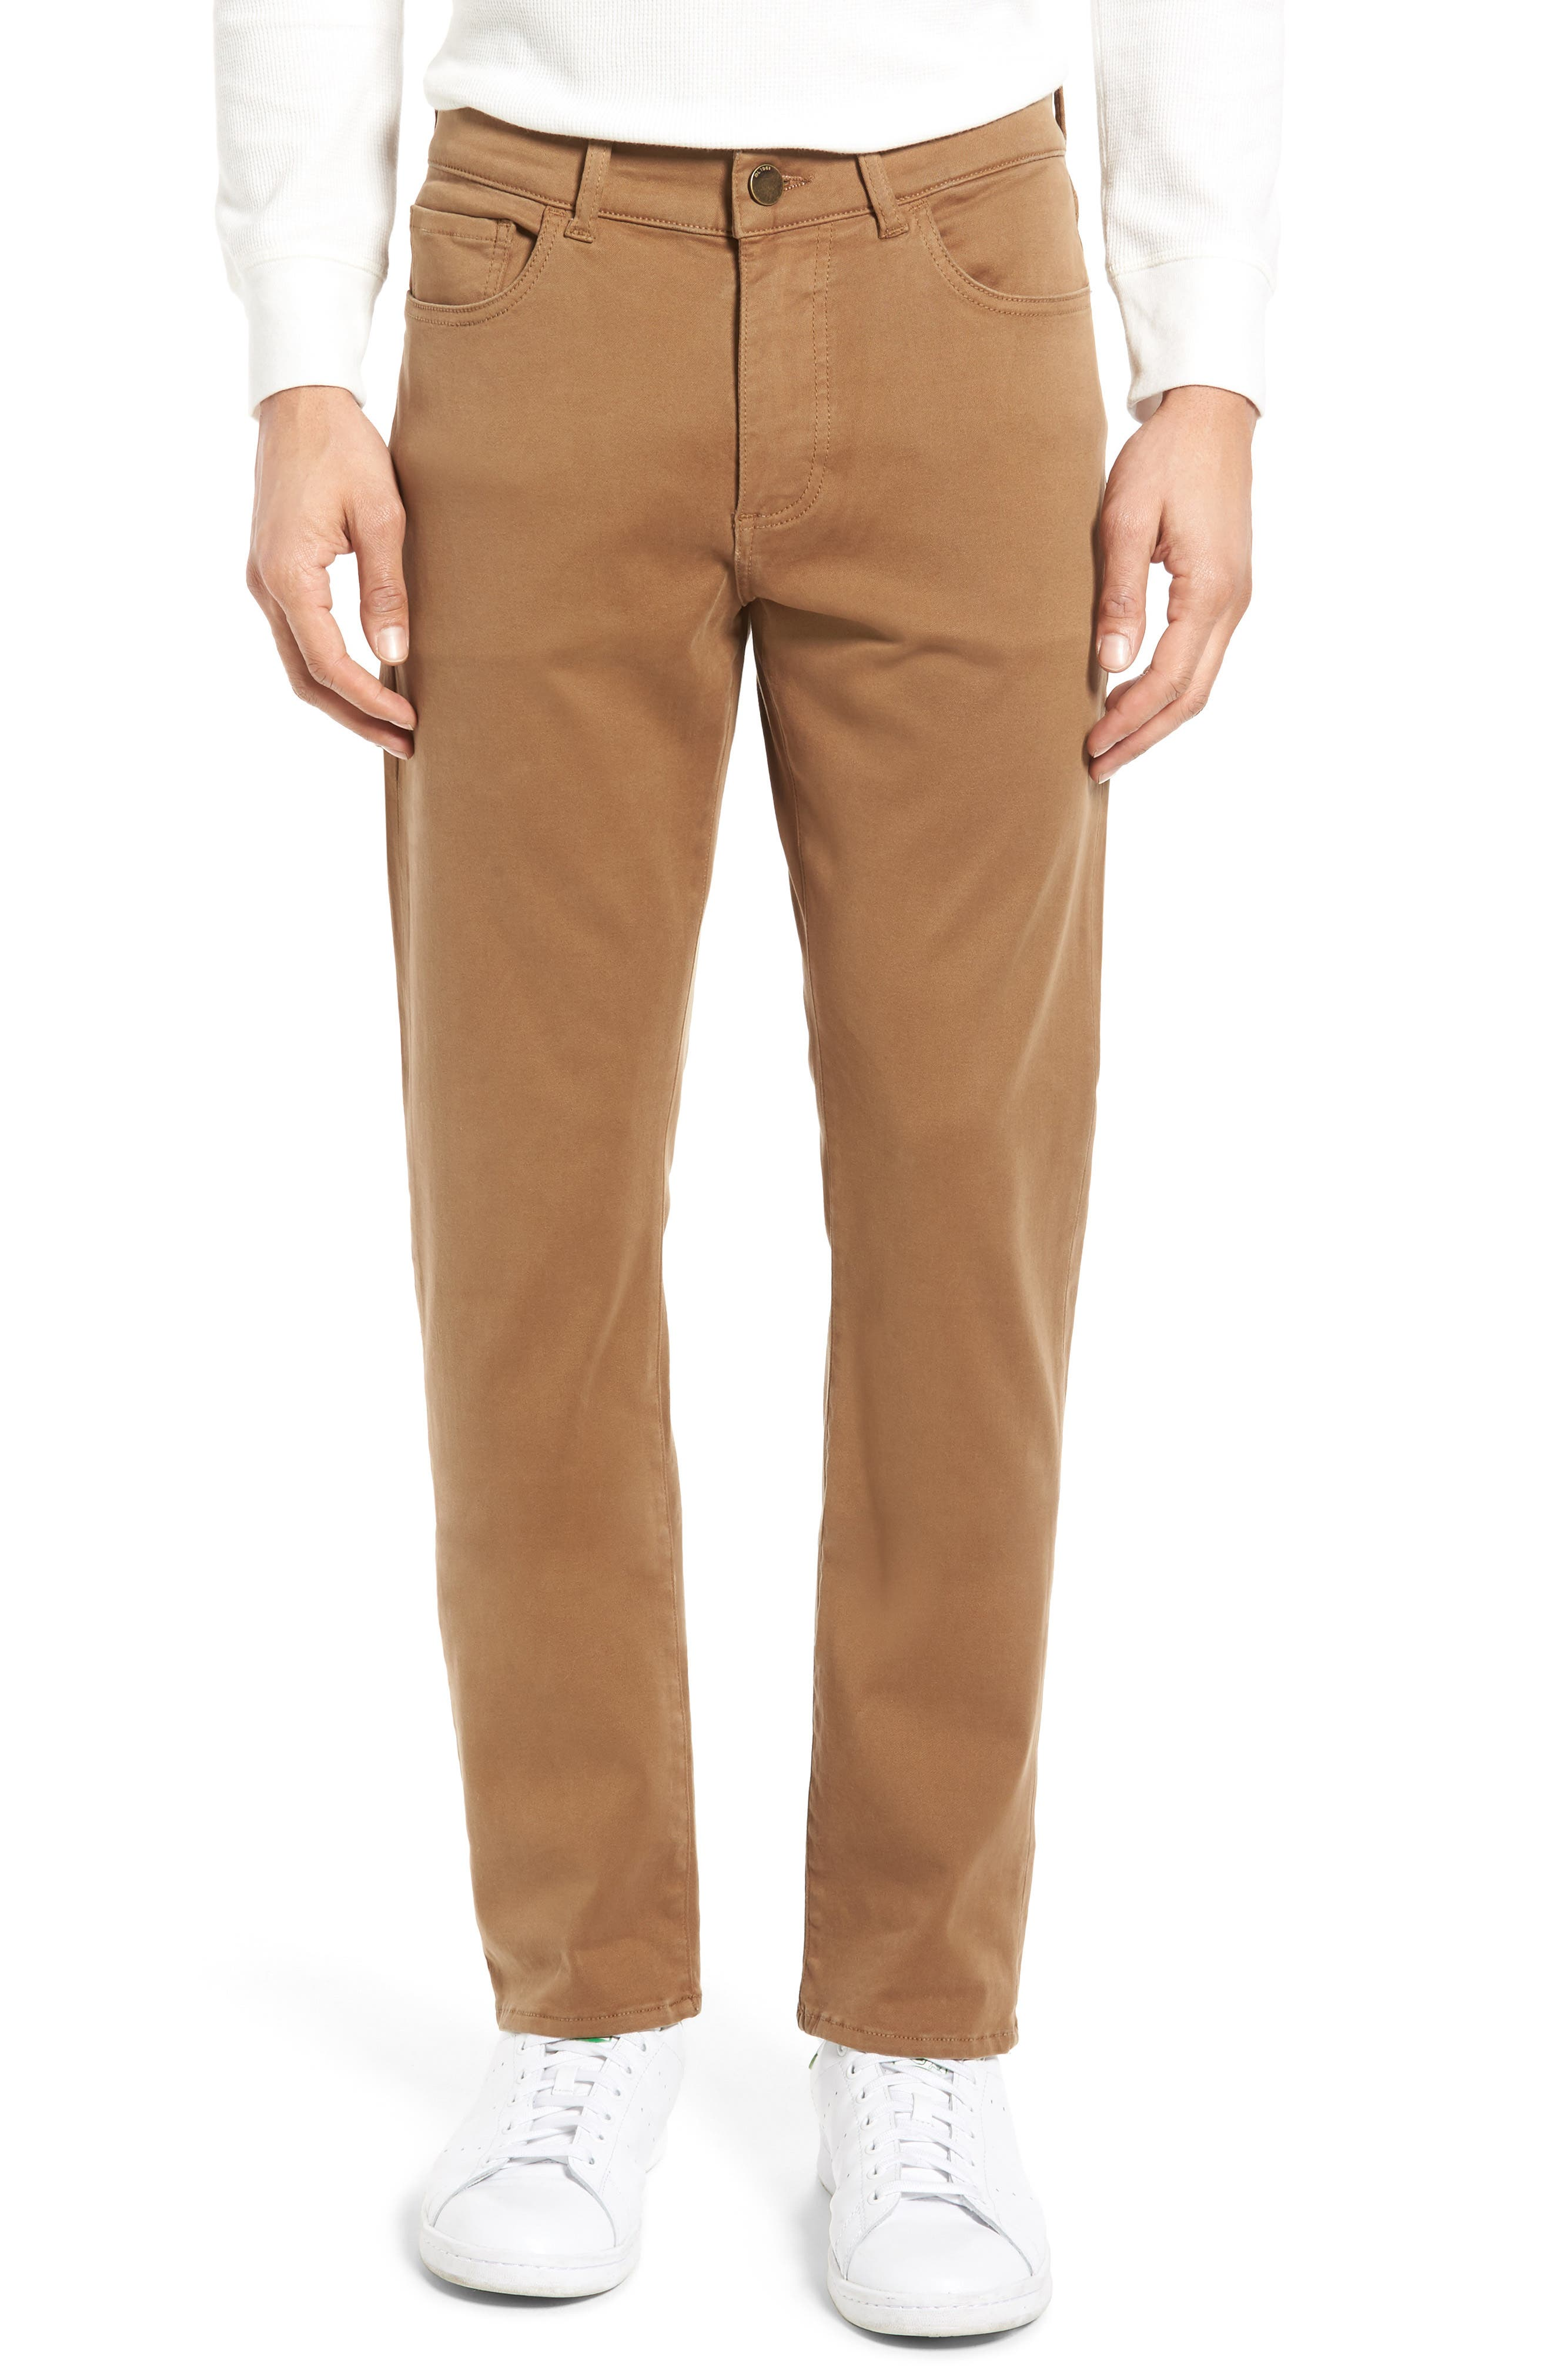 Russell Slim Fit Sateen Twill Pants,                             Main thumbnail 4, color,